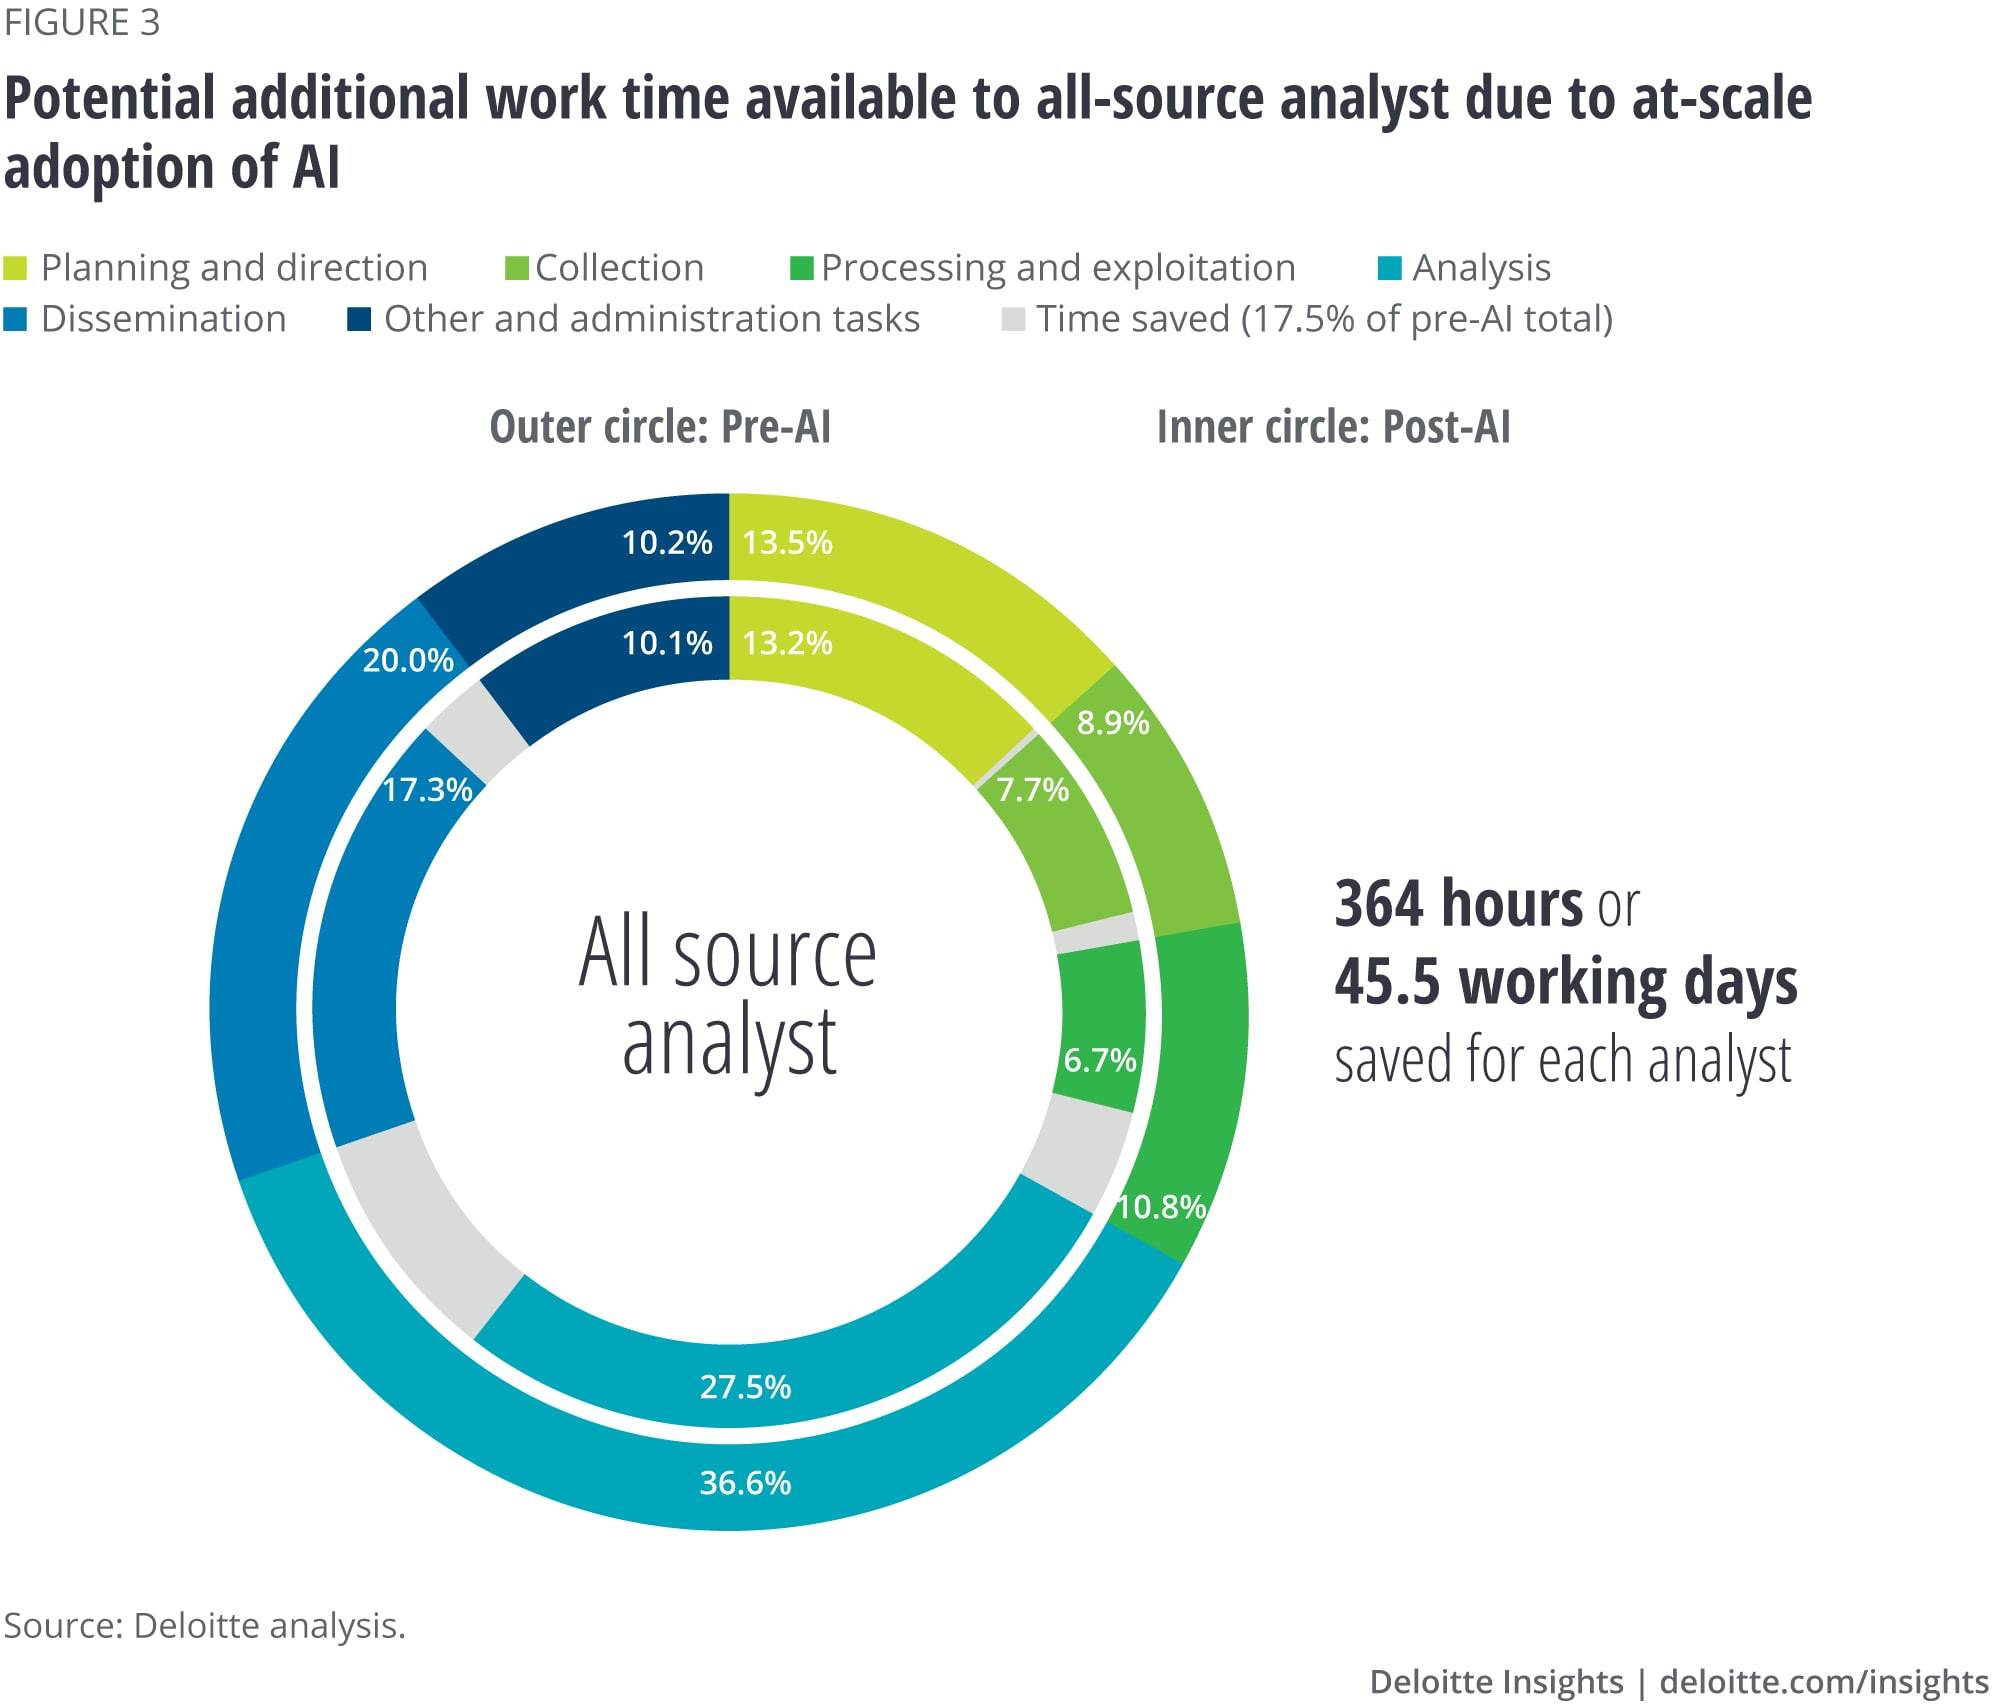 Potential additional work time available to all-source analyst due to at-scale adoption of AI